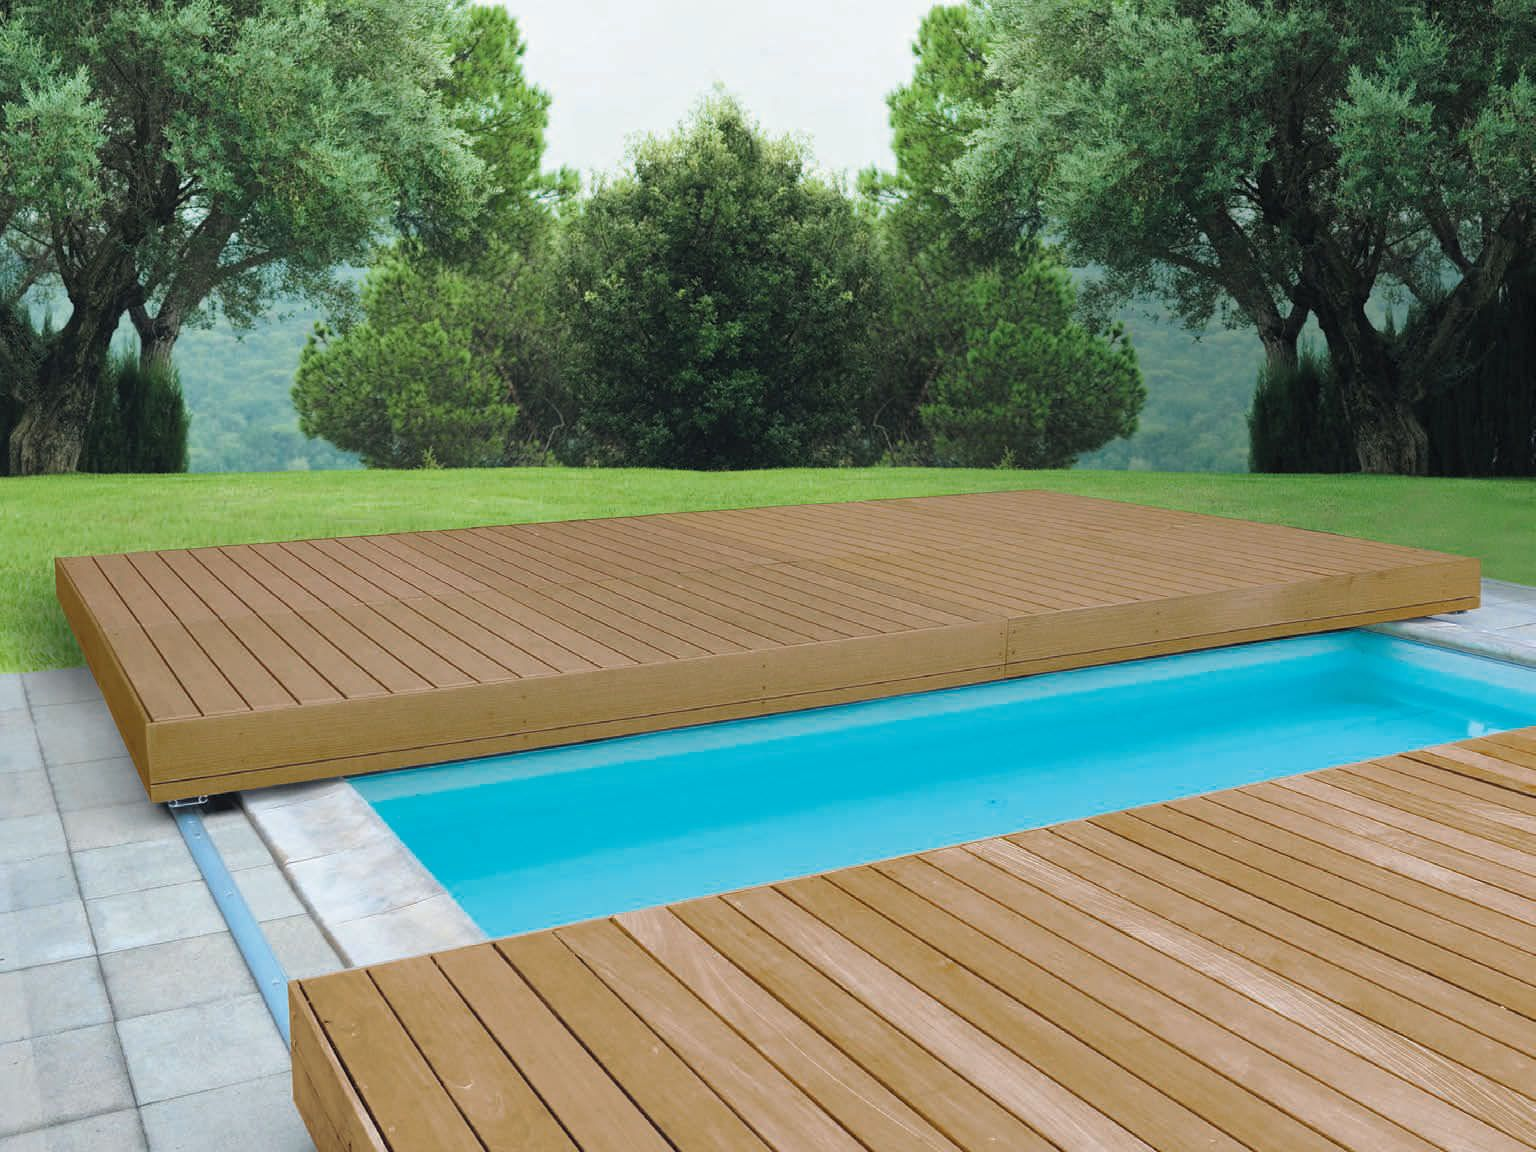 Security sliding deck pool cover Walter Piscine | pool | Pinterest ...